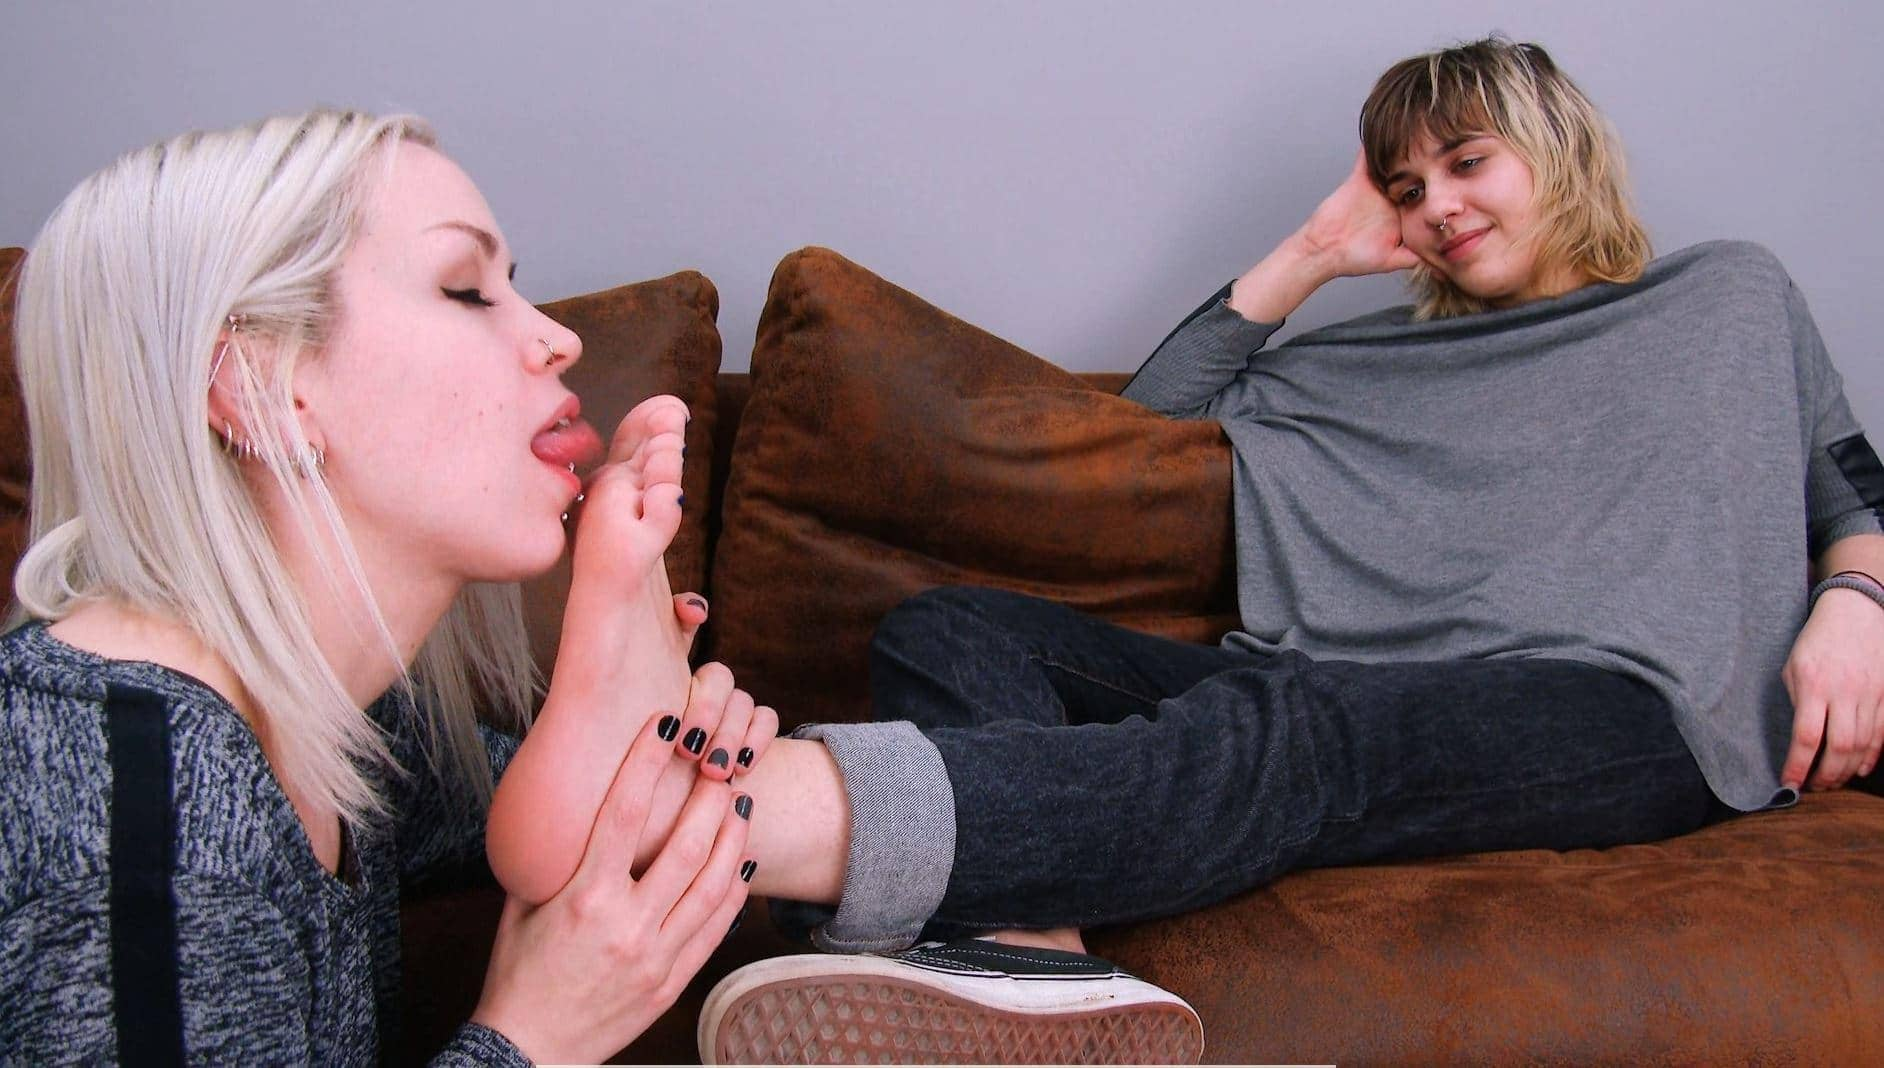 Licking her tasty soles